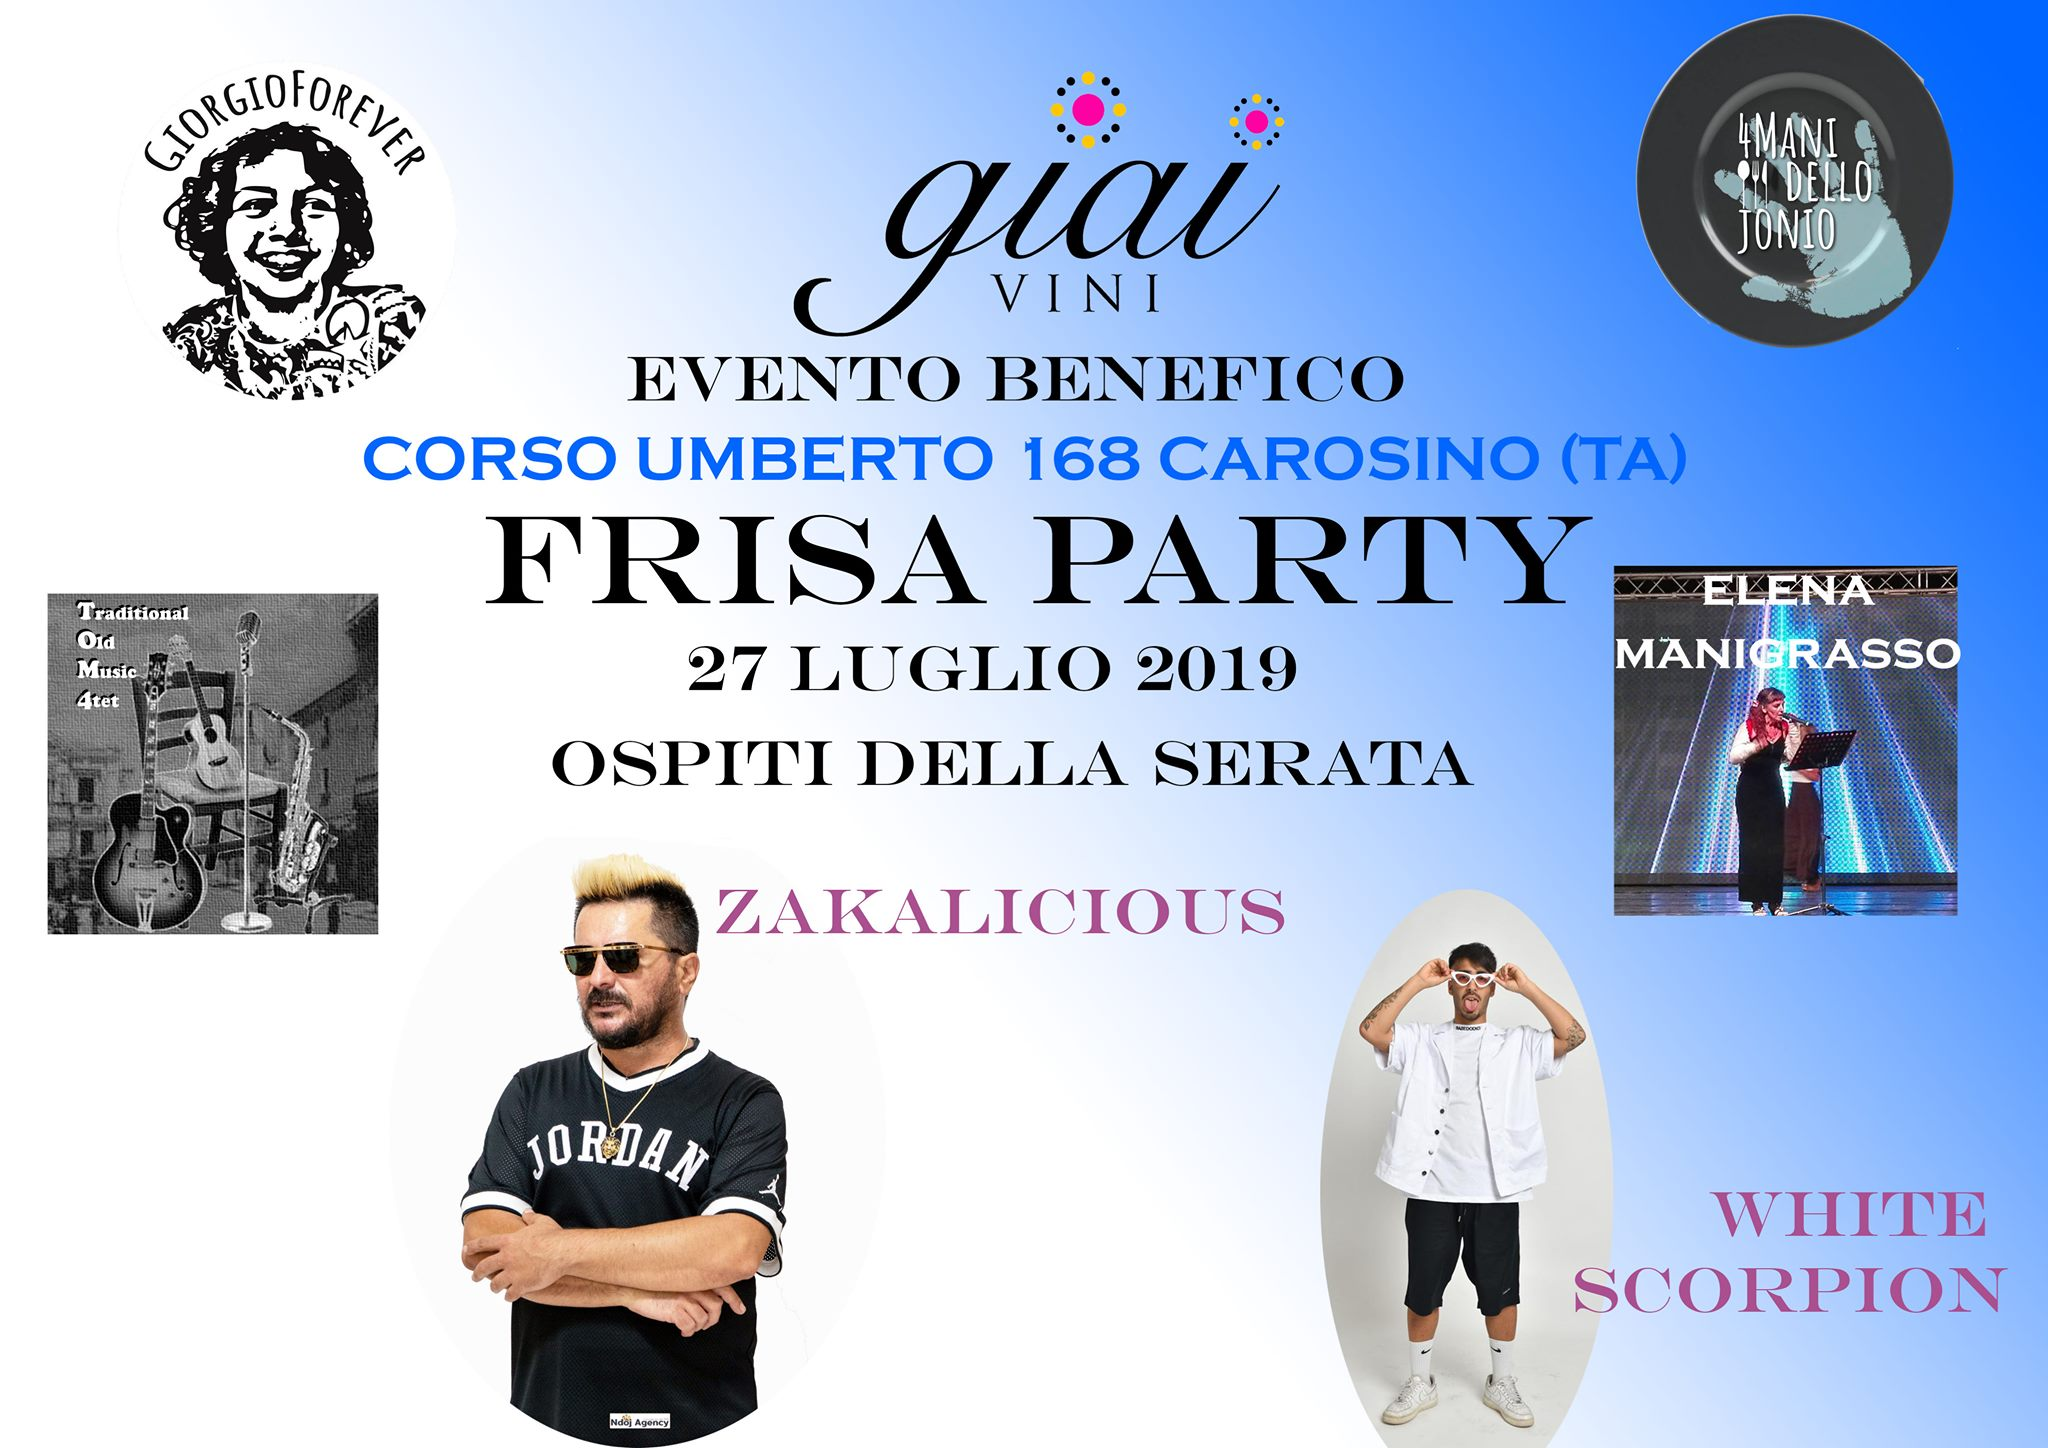 GIAI FRISA PARTY 27 LUGLIO CAROSINO EVENTO BENEFICO